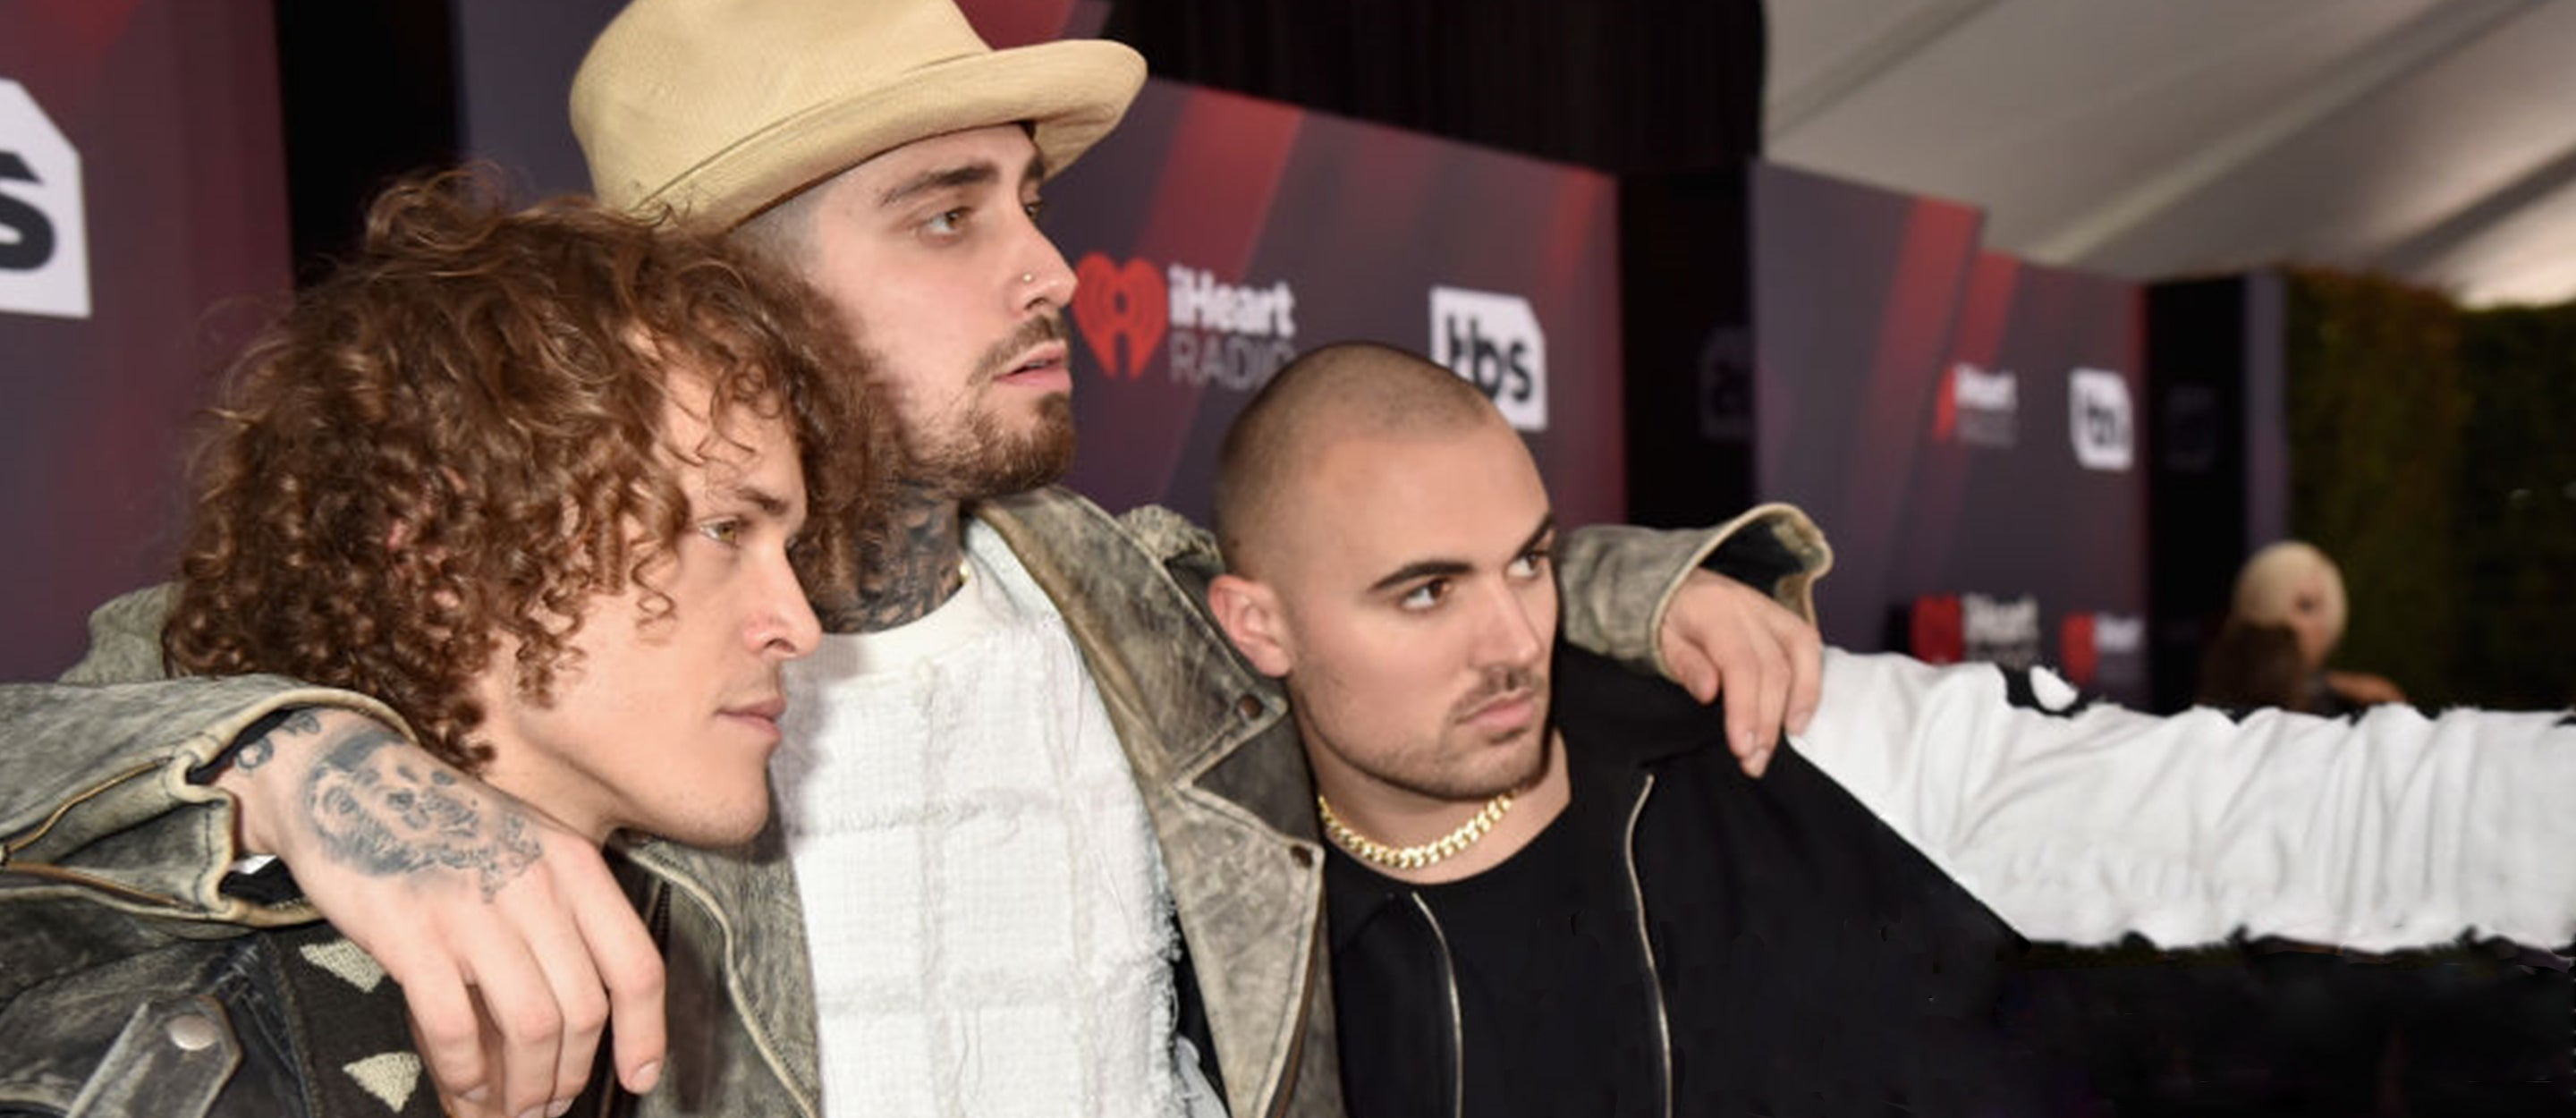 Cheat Codes at iHeart Radio awards